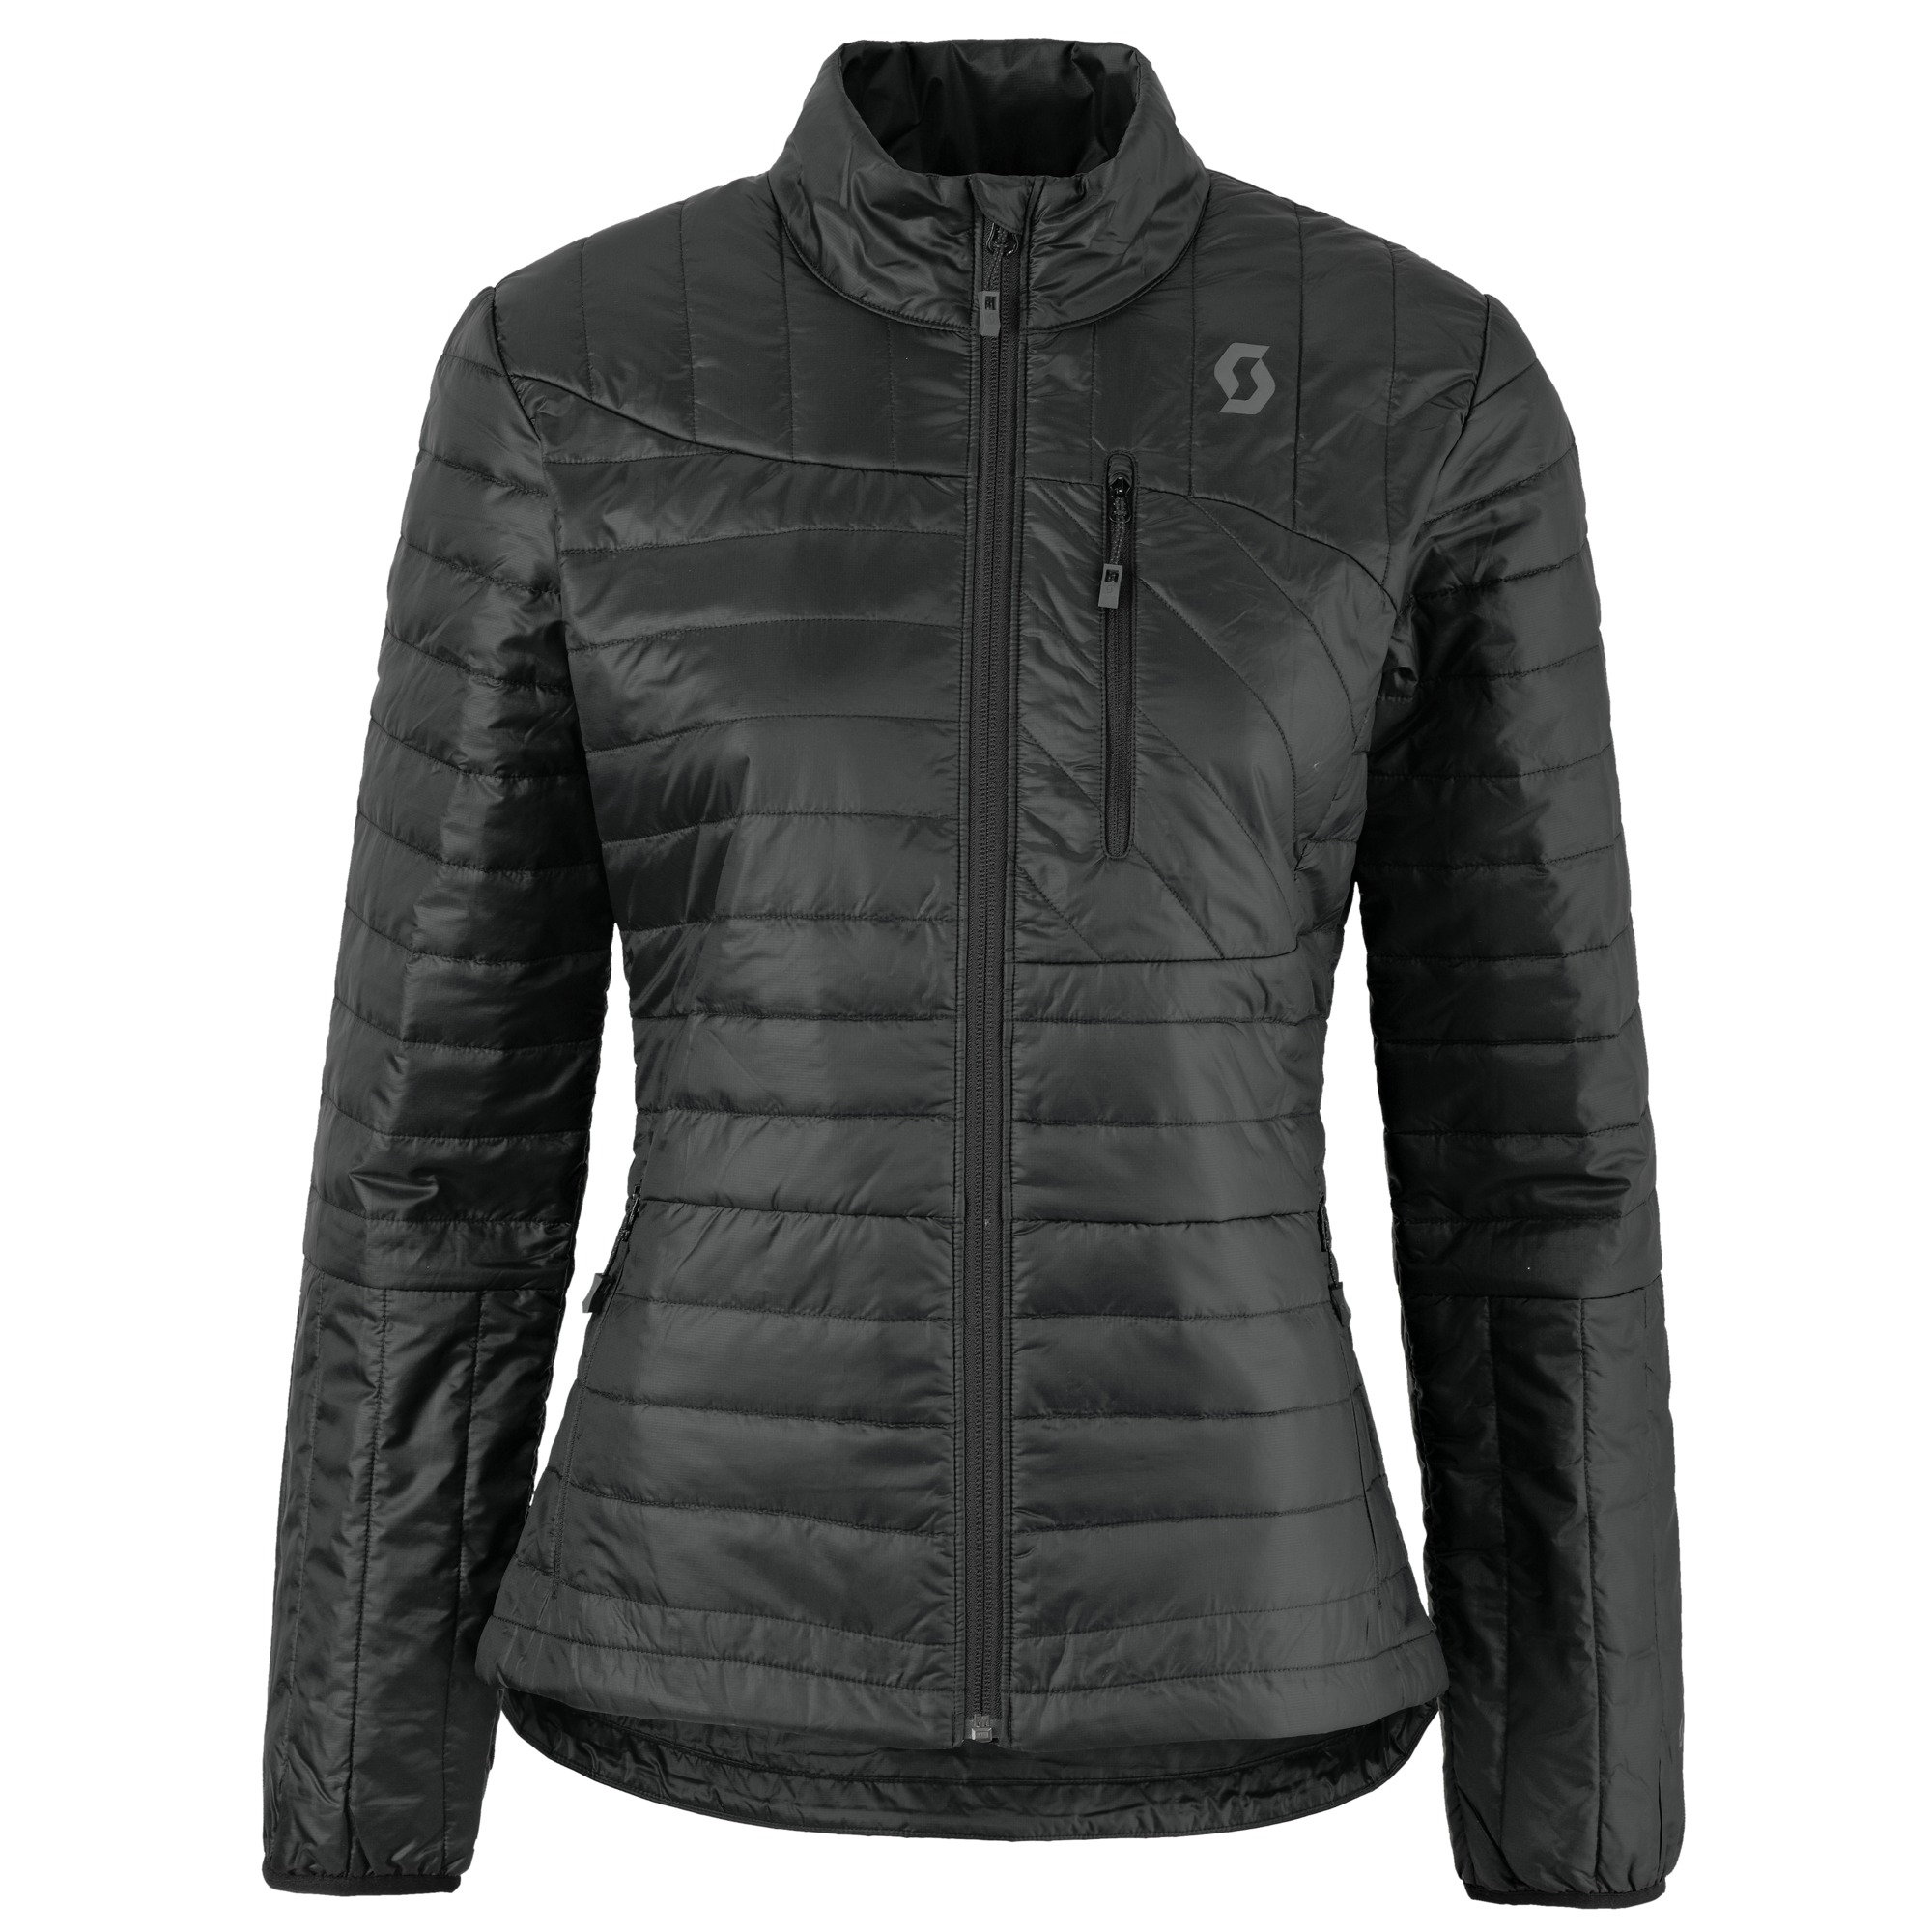 SCOTT Insuloft Light Women's Jacket